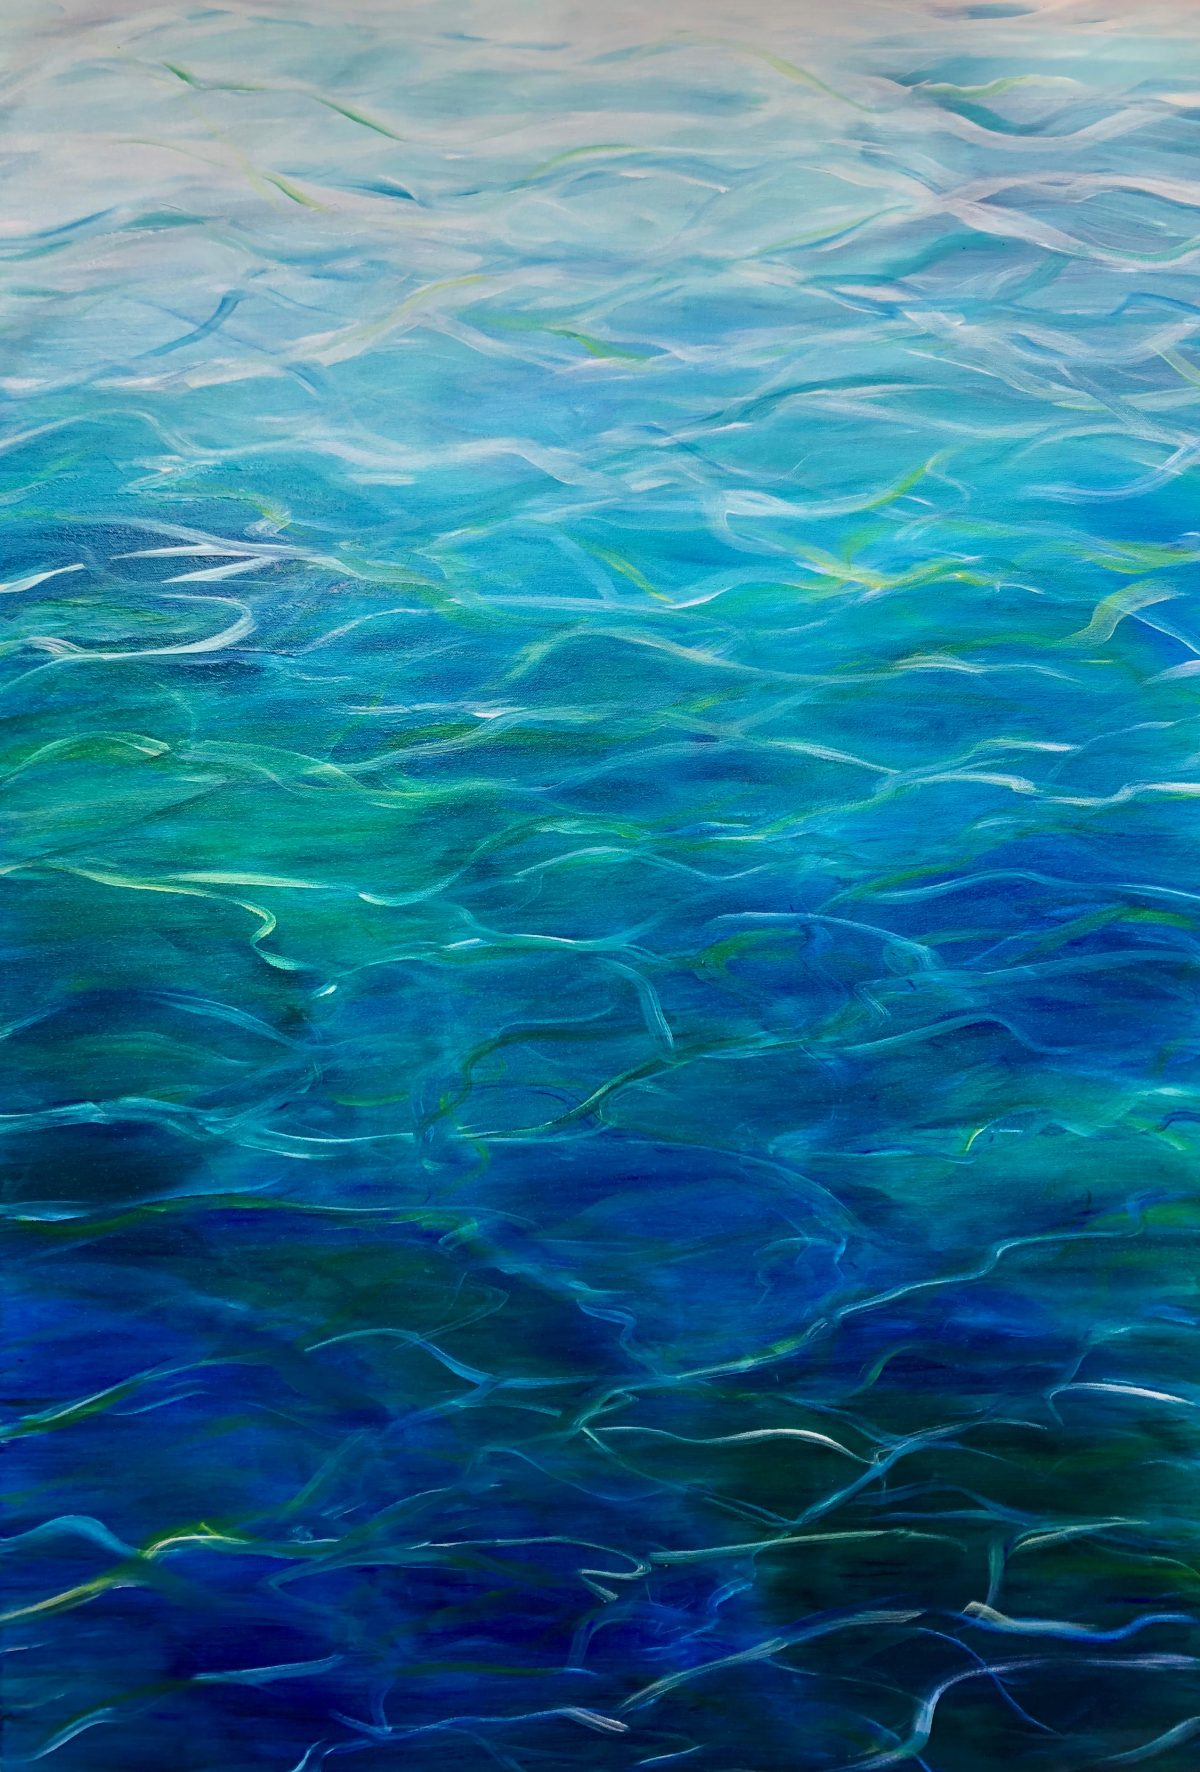 oil painting of turquoise water with ripples of blue, green and white